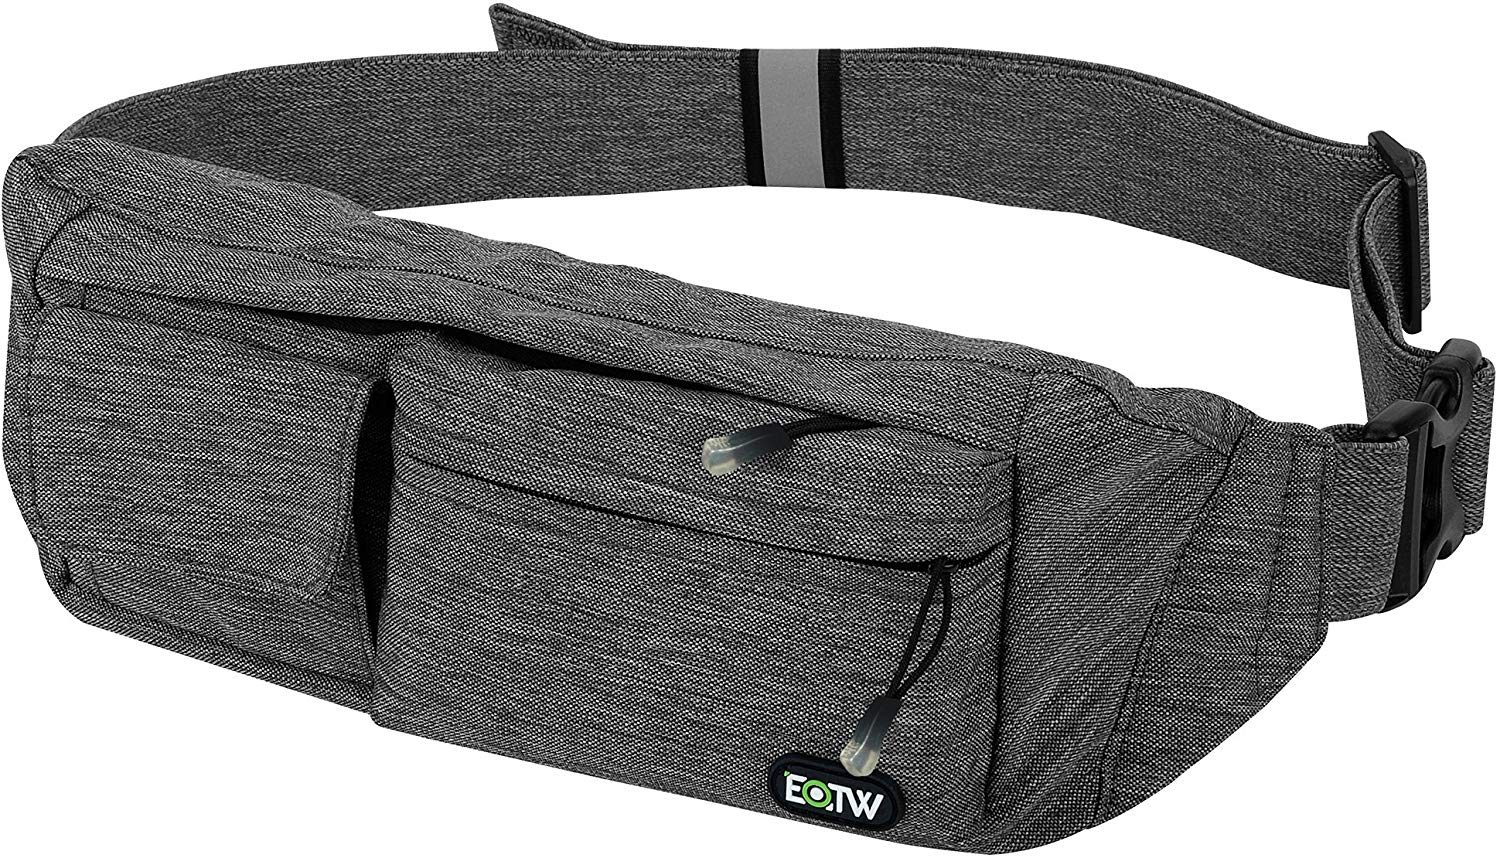 Fun FACT I Dont Care Sport Waist Packs Fanny Pack Adjustable For Run